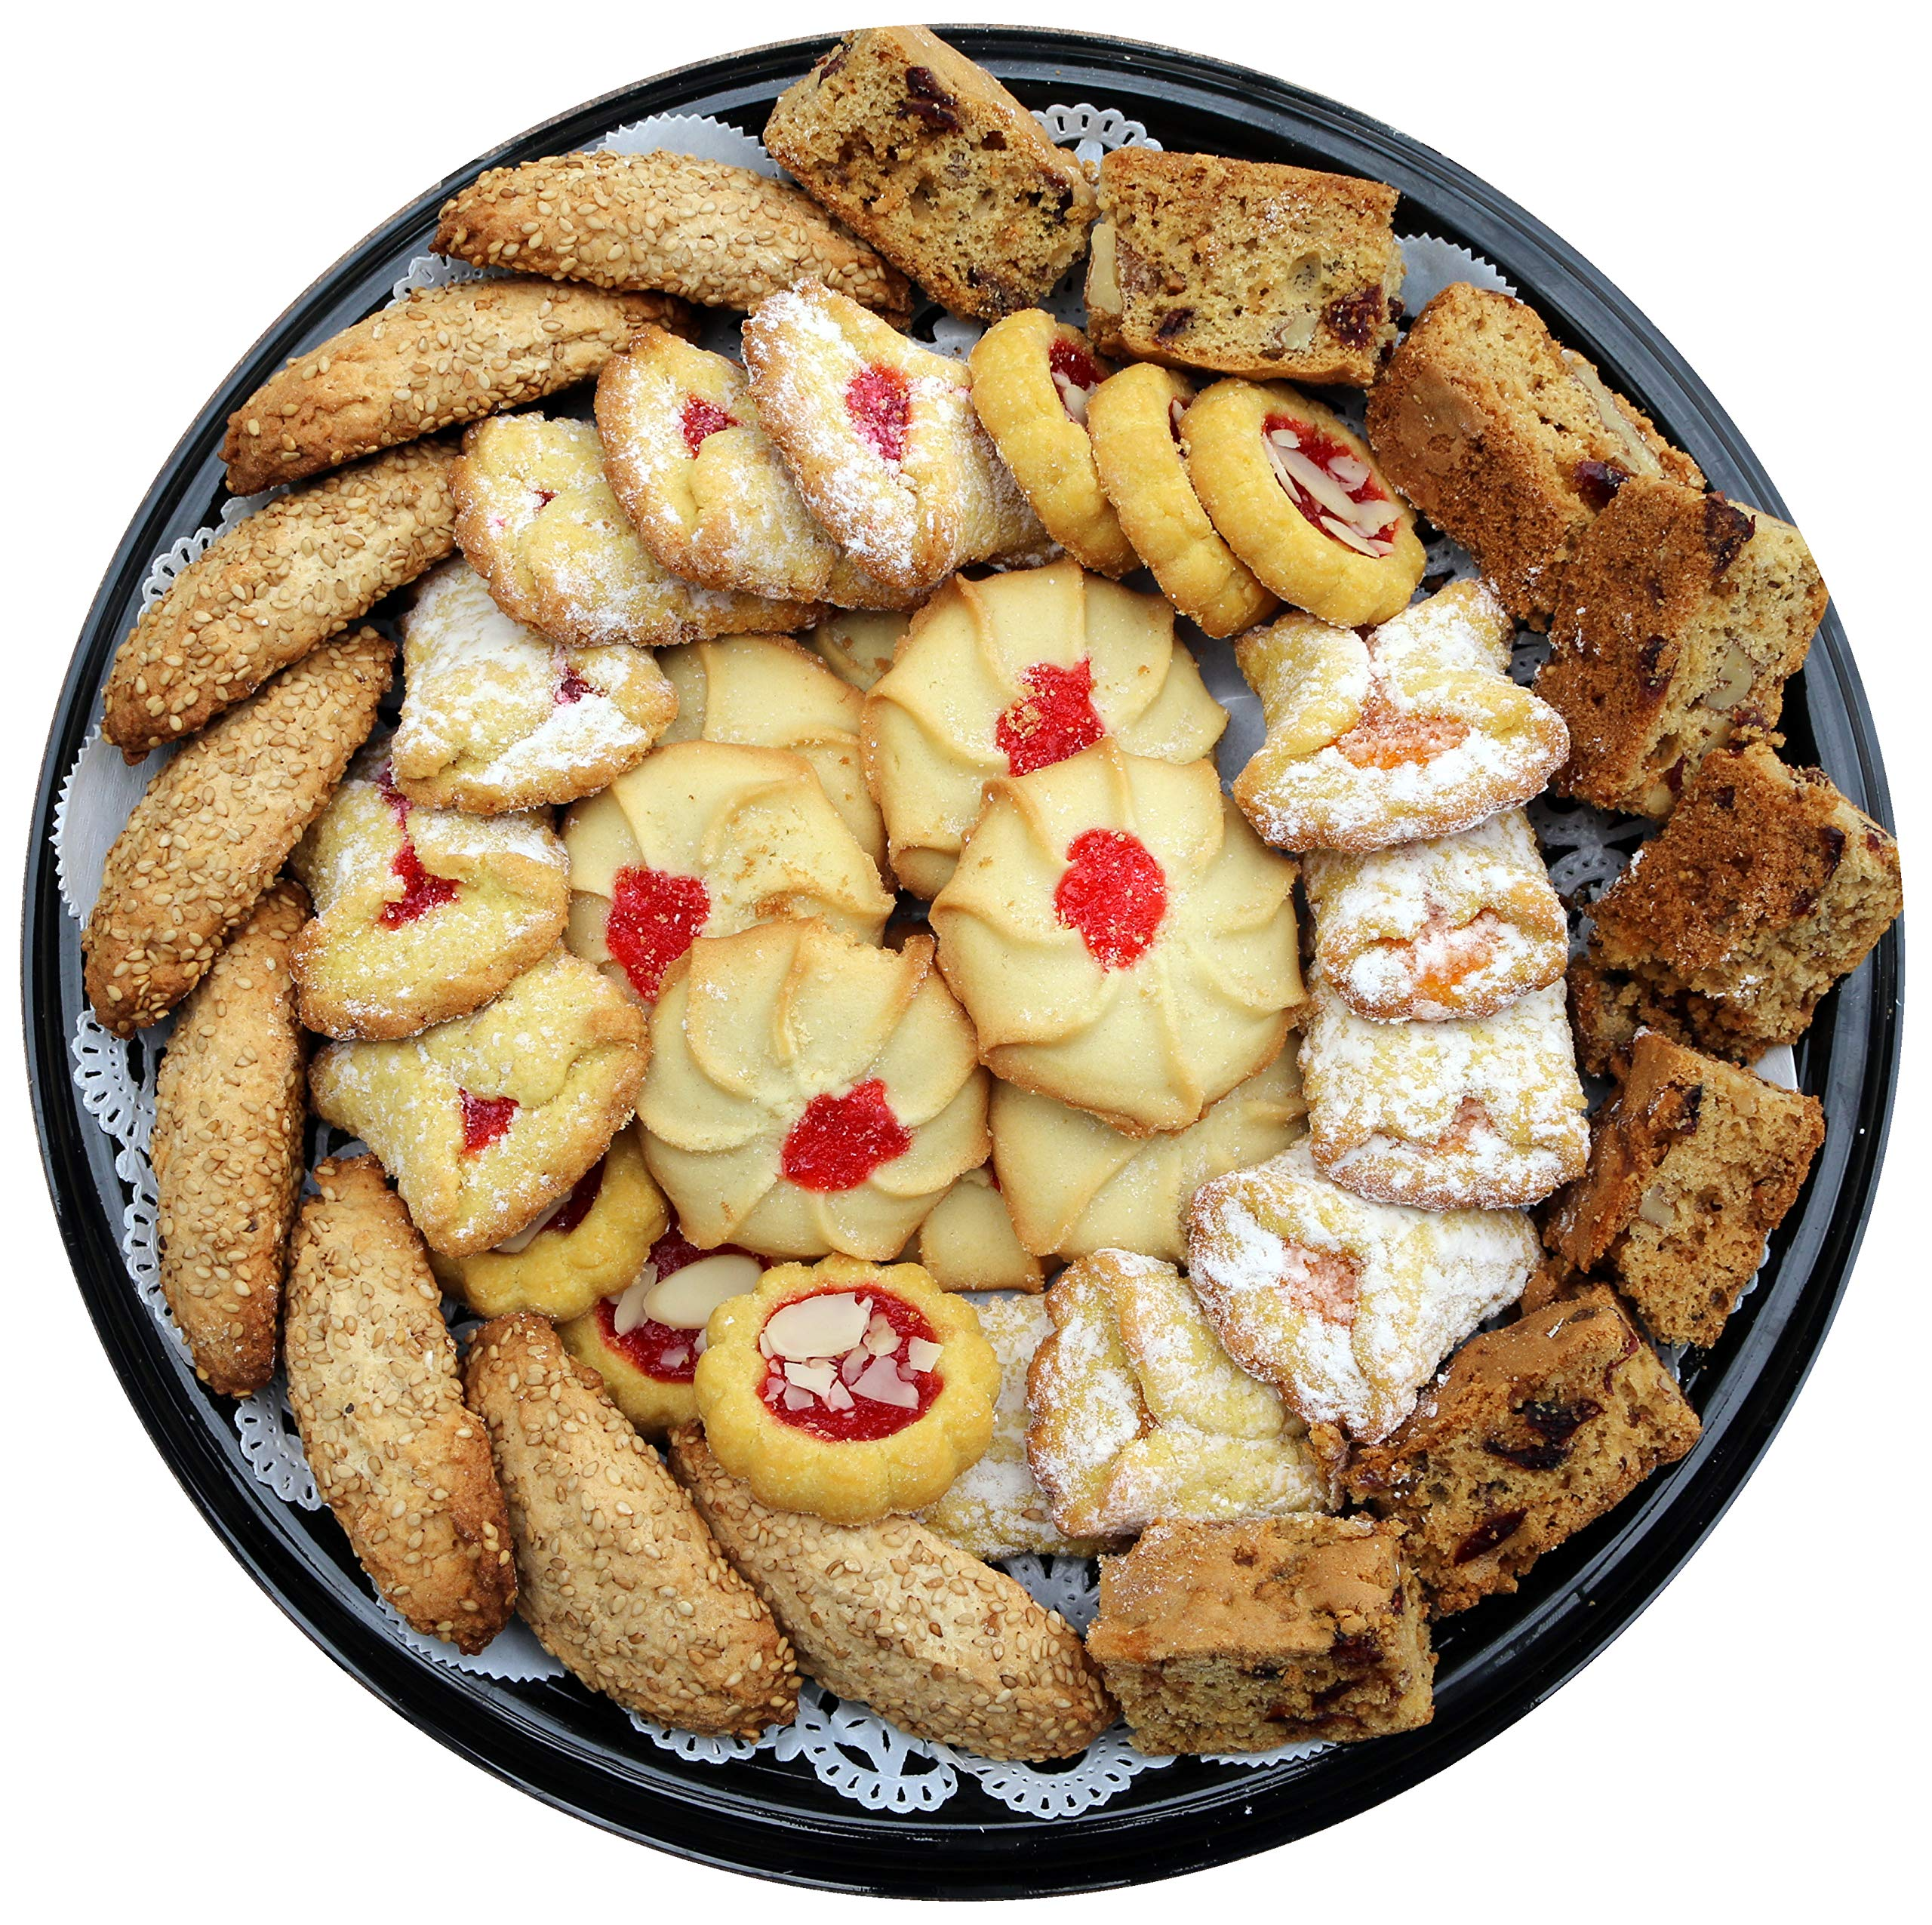 40 Count Fancy Bakery Cookies Gift Tray - Perfect for Birthdays, Parties, & Sympathy Events